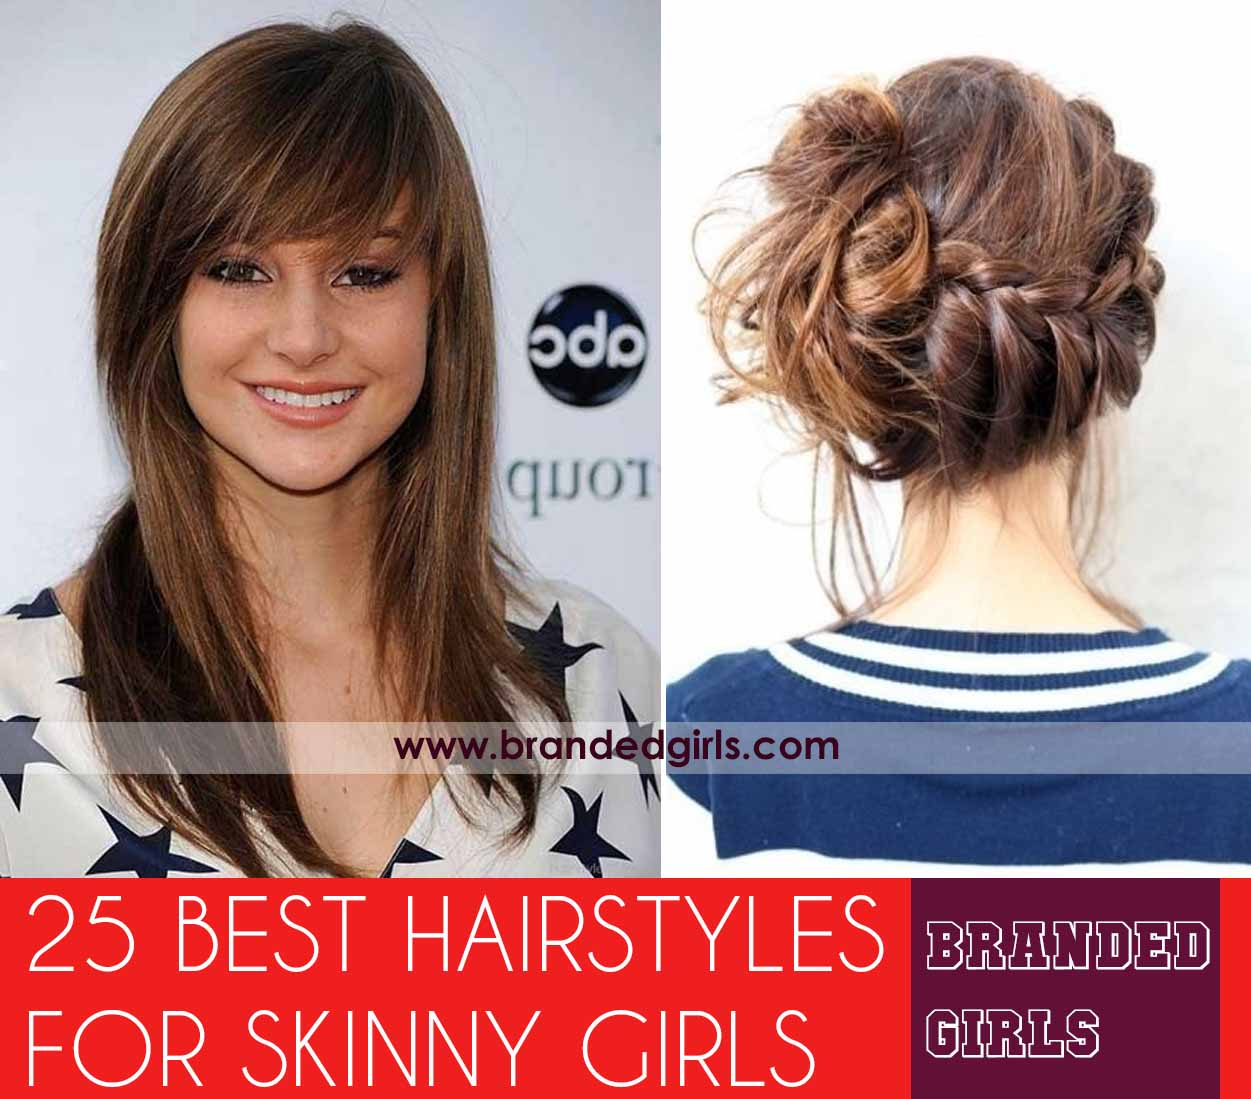 Swell 18 Cute Hairstyles For School Girls New Styles And Tips Short Hairstyles Gunalazisus